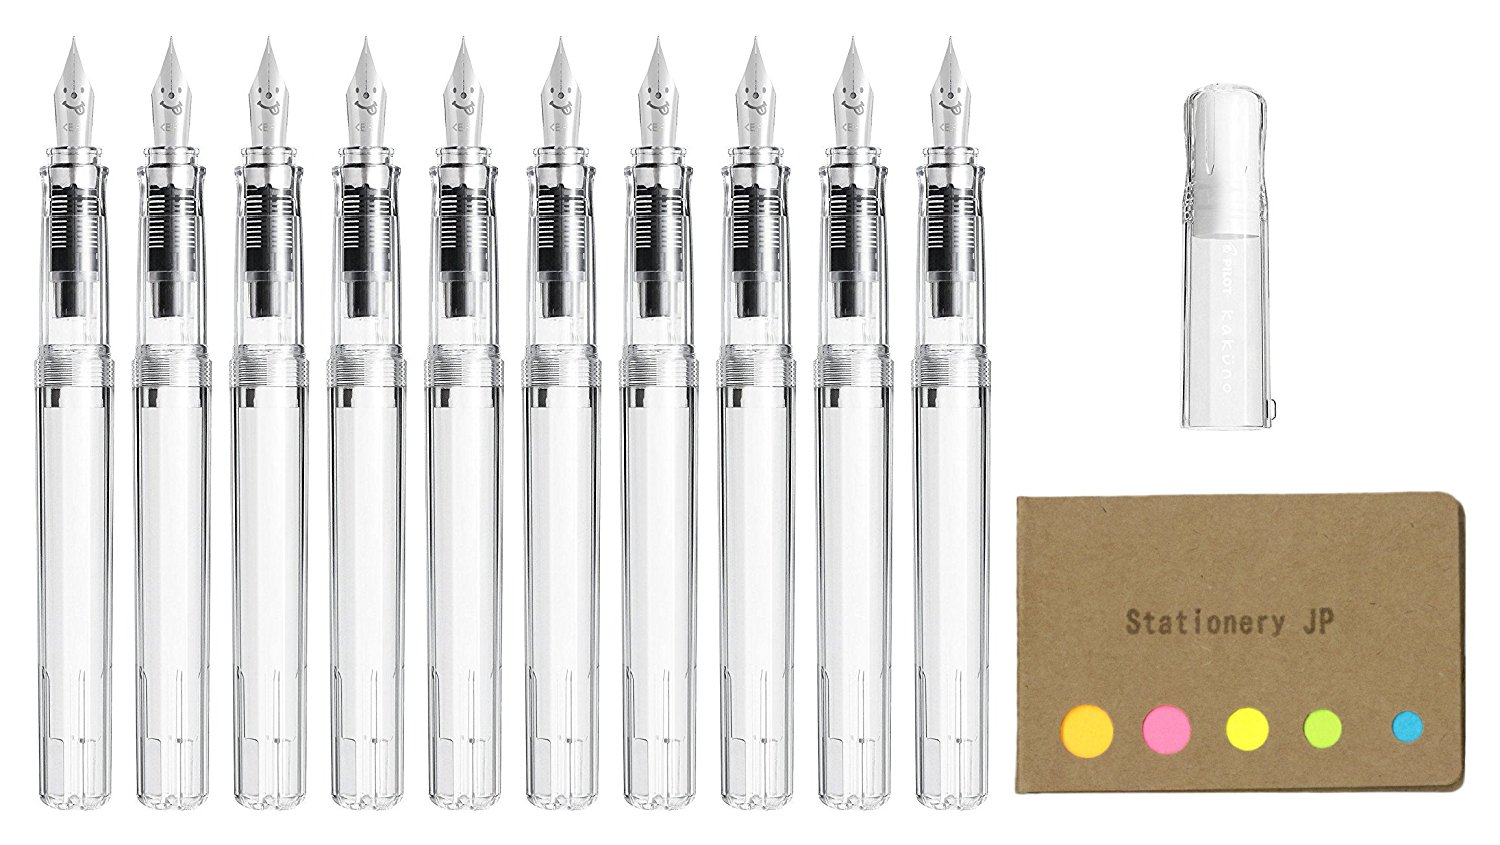 Pilot Kakuno Fountain Pen, Extra Fine Nib, Clear Body, 10-pack, Sticky Notes Value Set